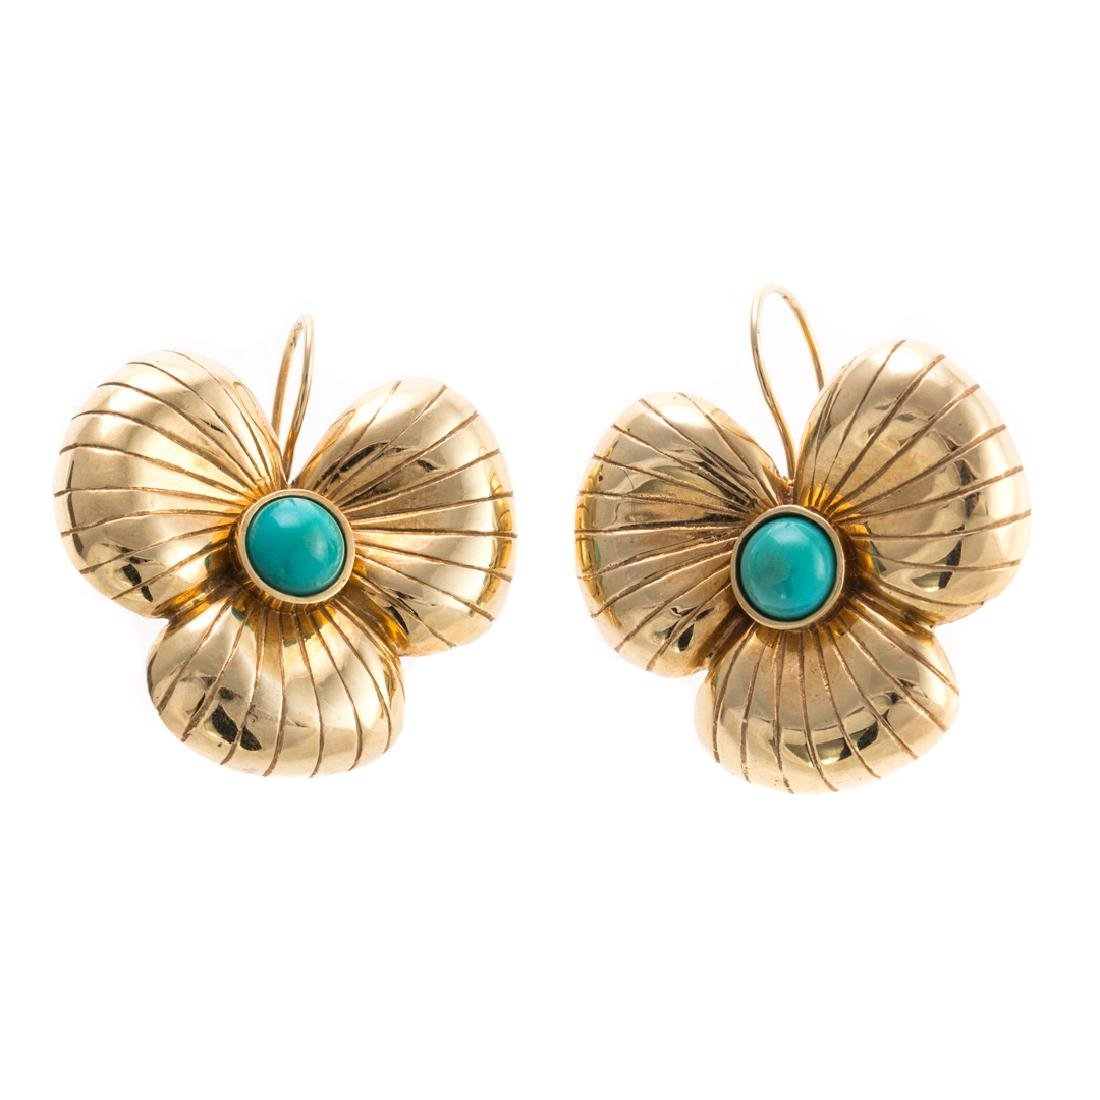 A Pair of 14K Clover Earrings with Turquoise